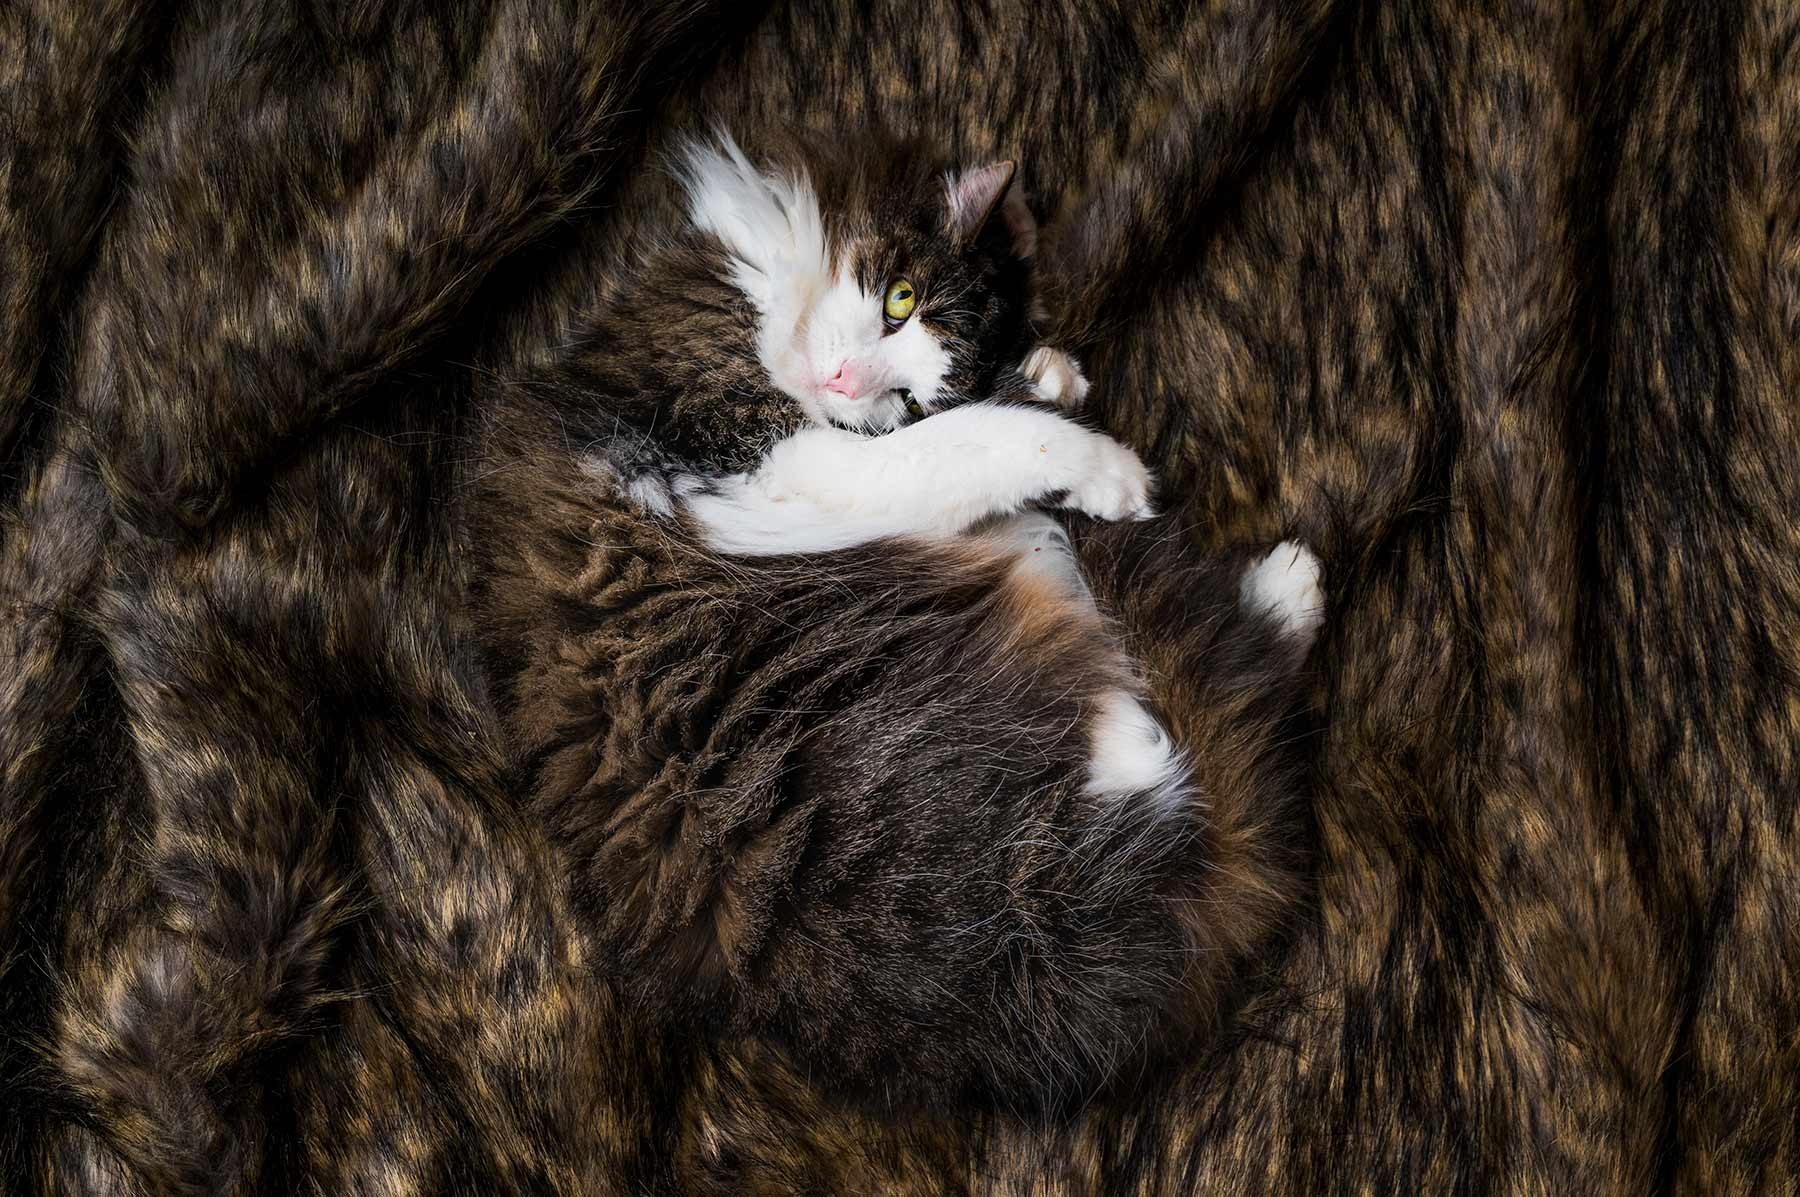 A-portrait-of-a-fluffy-striped-cat-curled-up-on-a-soft-blanket